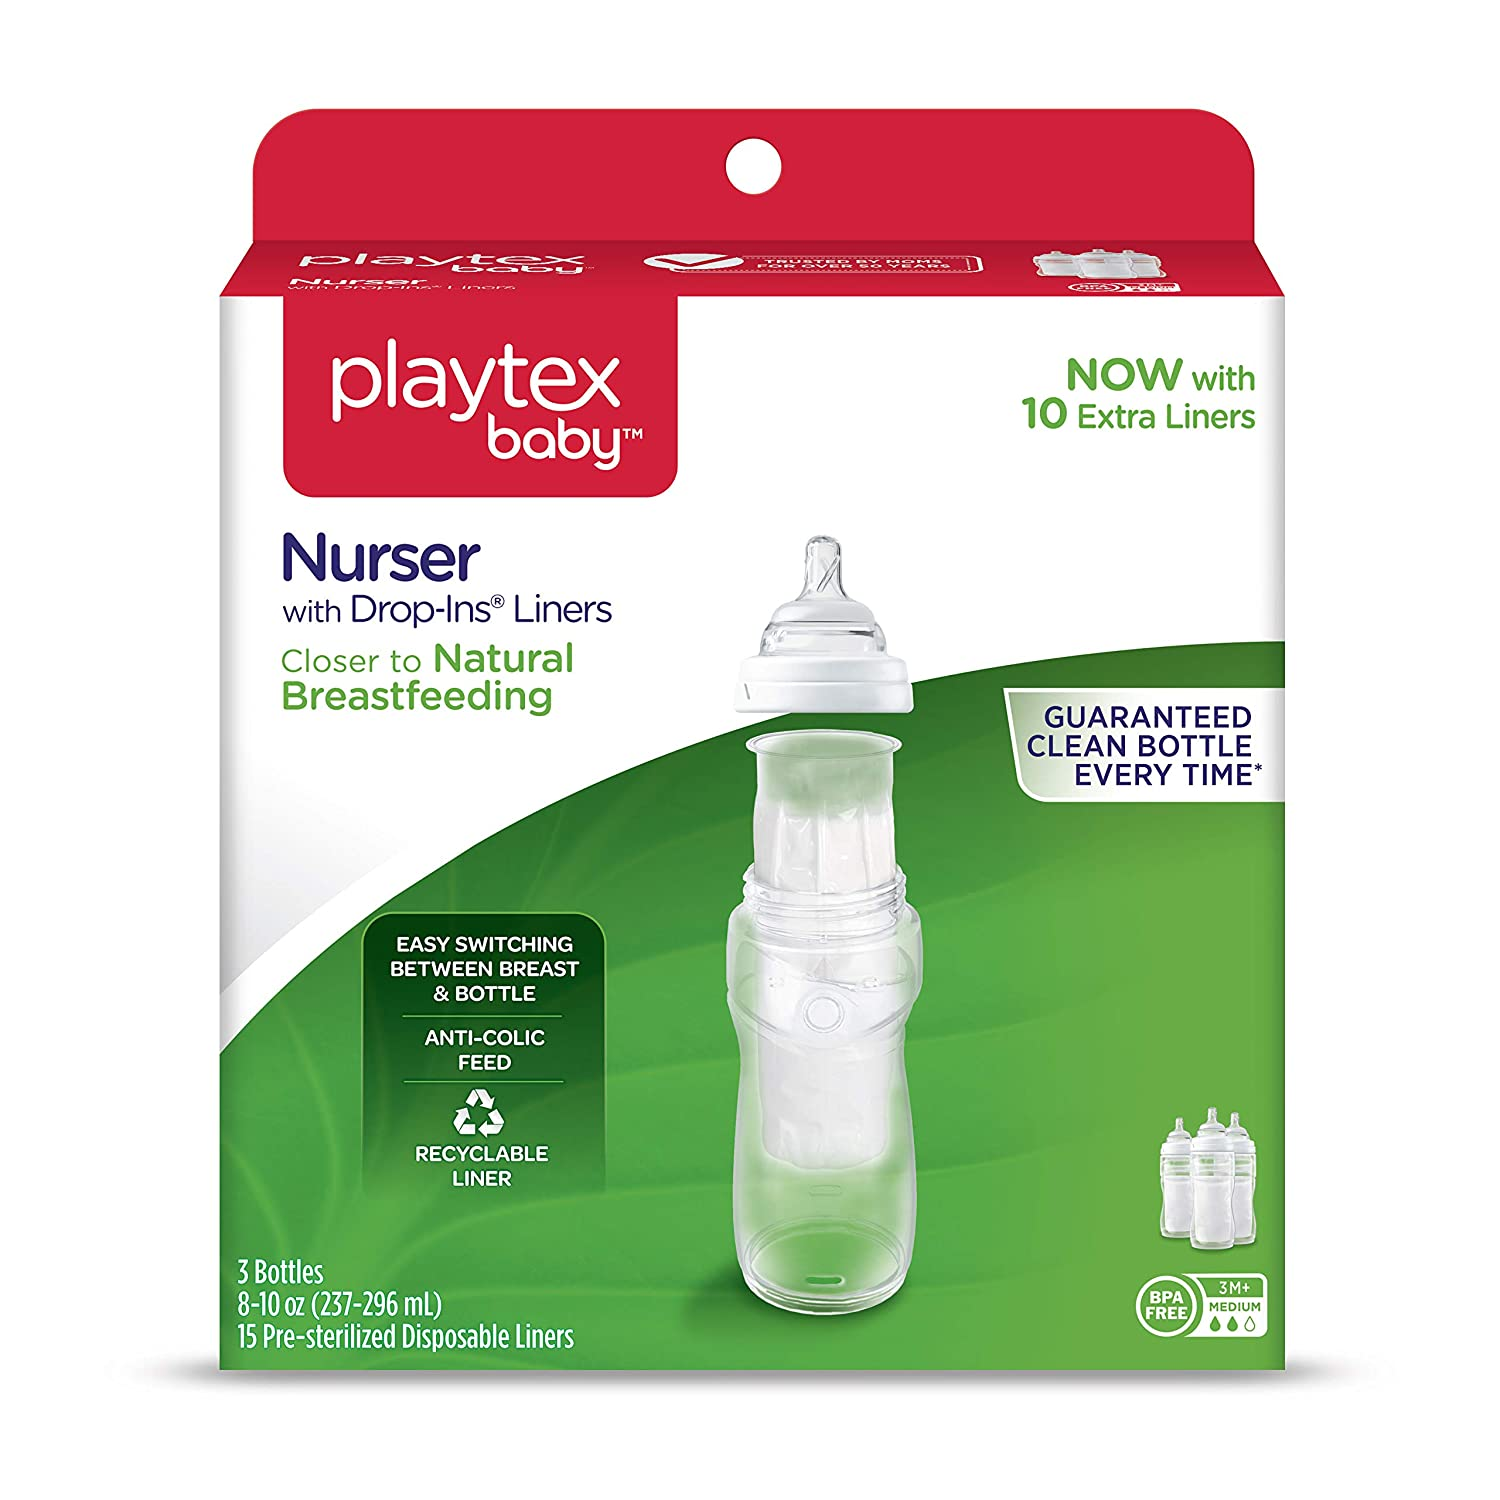 Playtex Baby Nurser Baby Bottle with Drop-Ins Disposable Liners, Closer to Breastfeeding, Gift Set 0597000